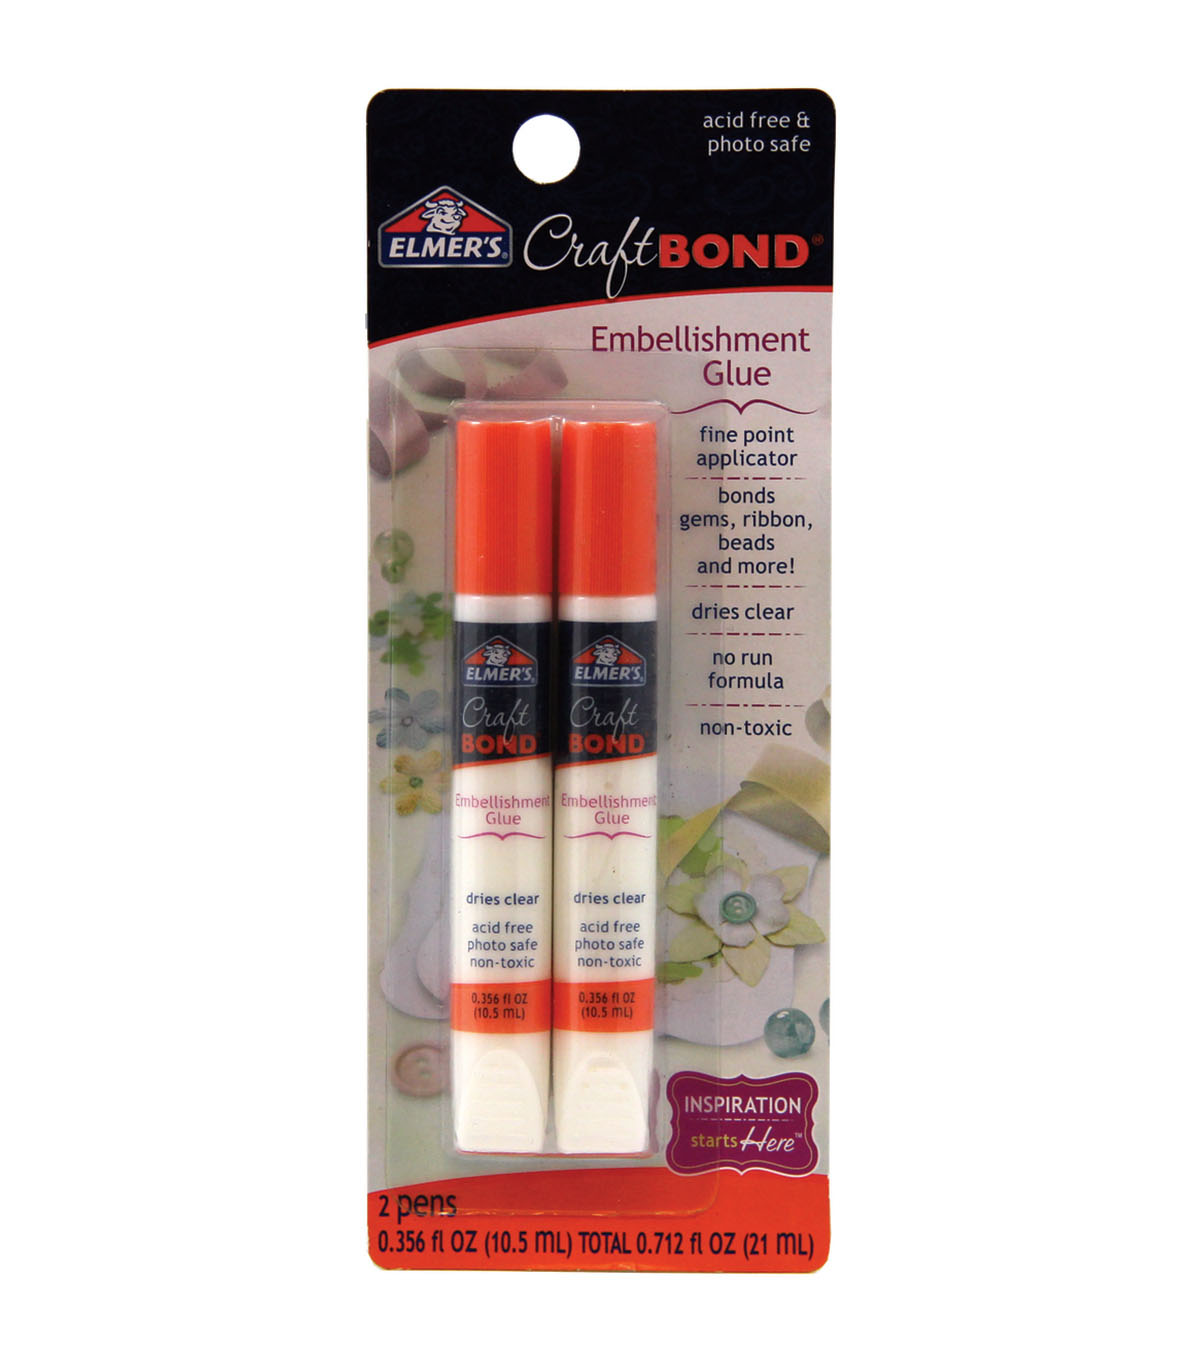 CraftBond Precisionn Embellishment Glue